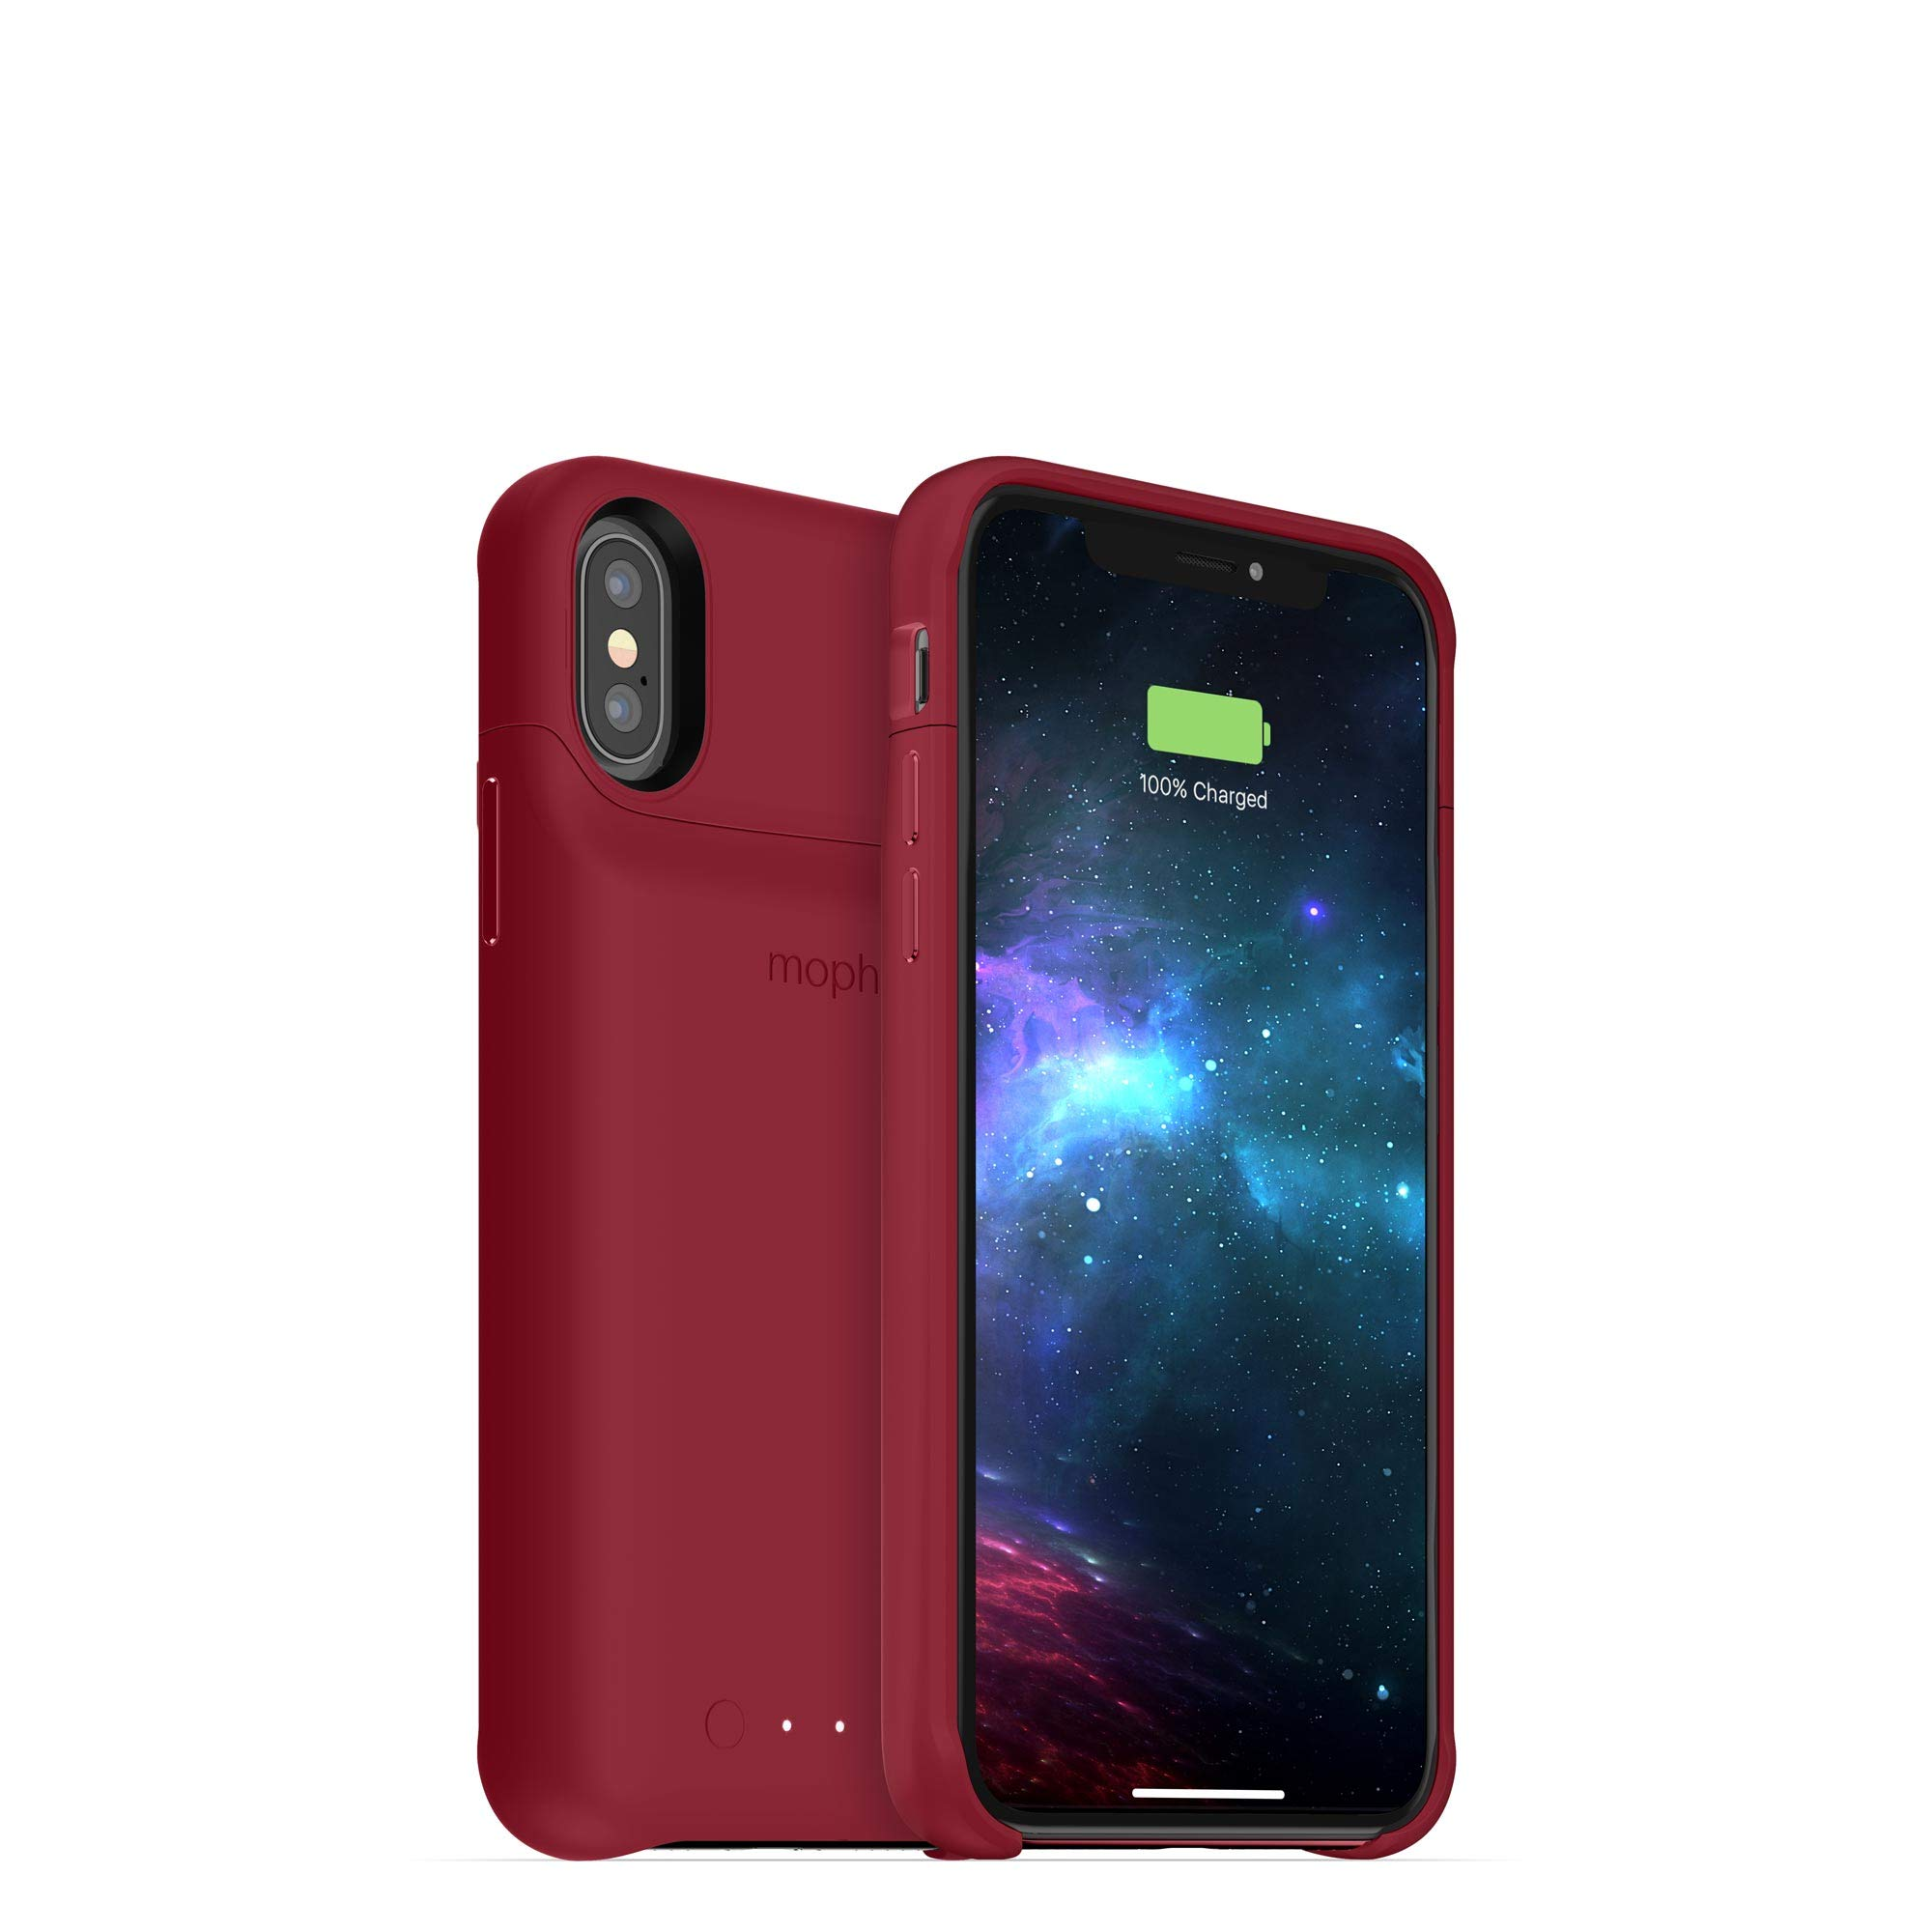 mophie Juice Pack Access Battery Case Made for Apple iPhone Xs/X (2,200mAh) - Dark Red